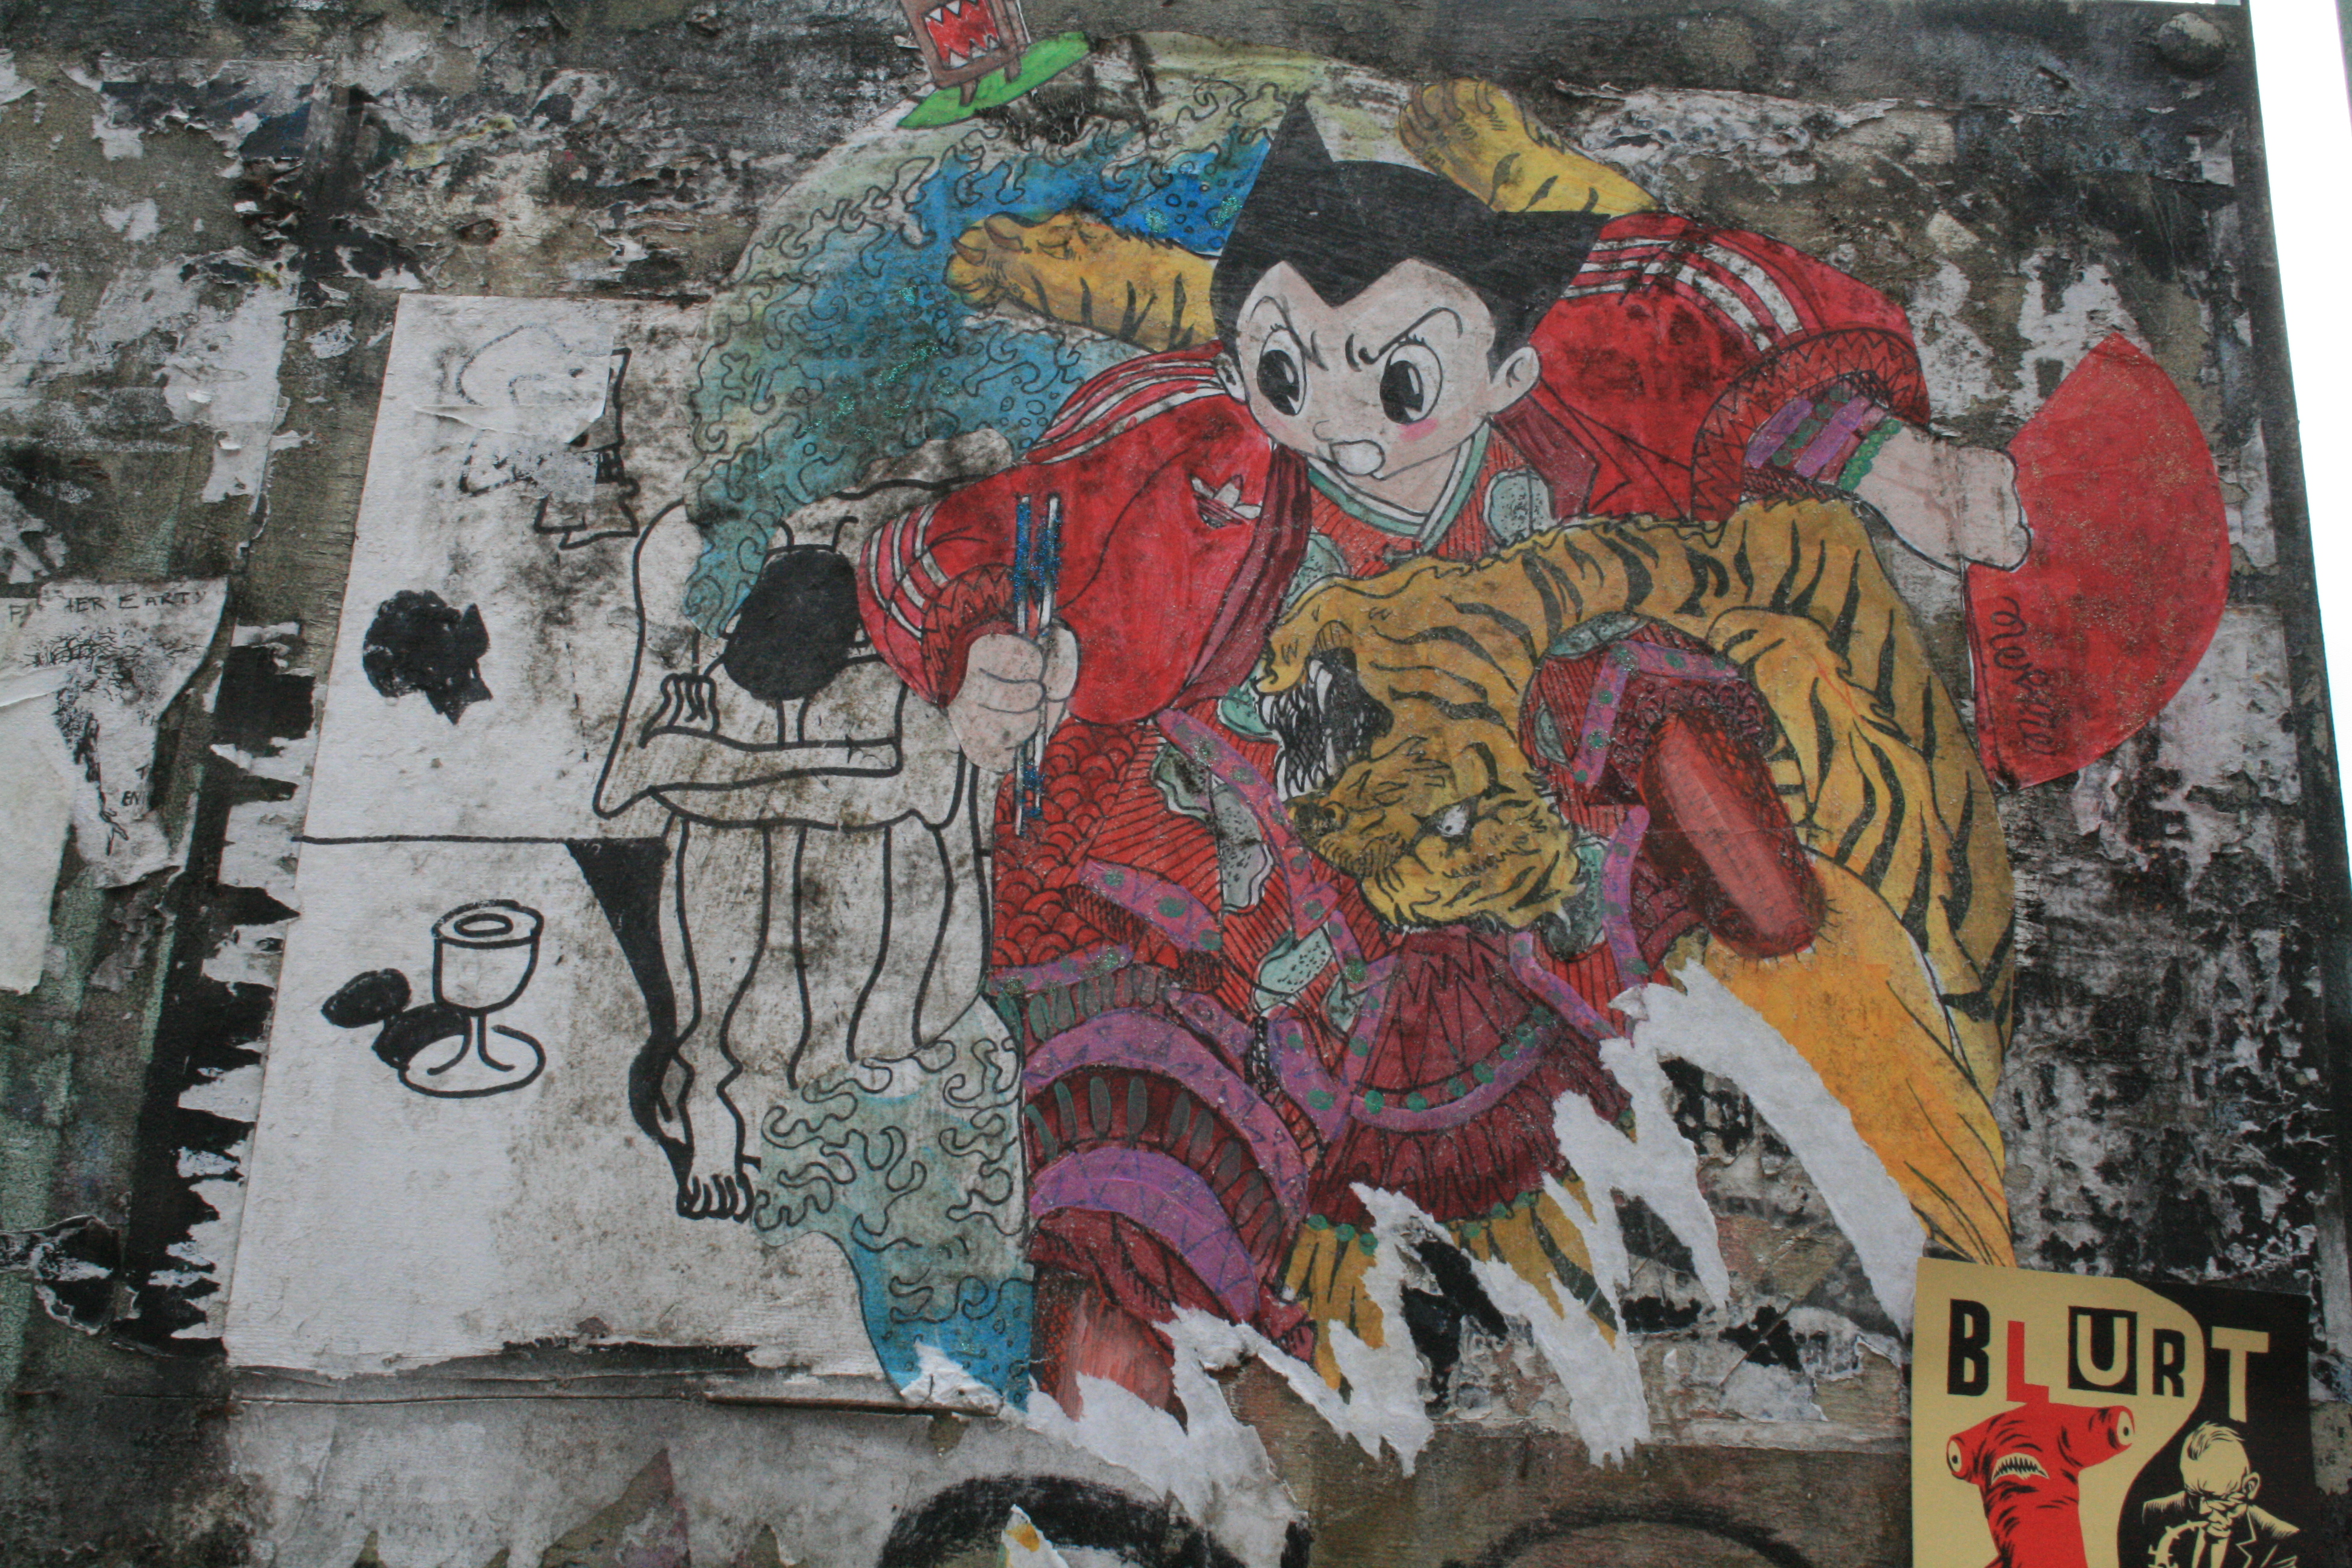 Graffiti in Shoreditch, London - Pang, Astro Boy